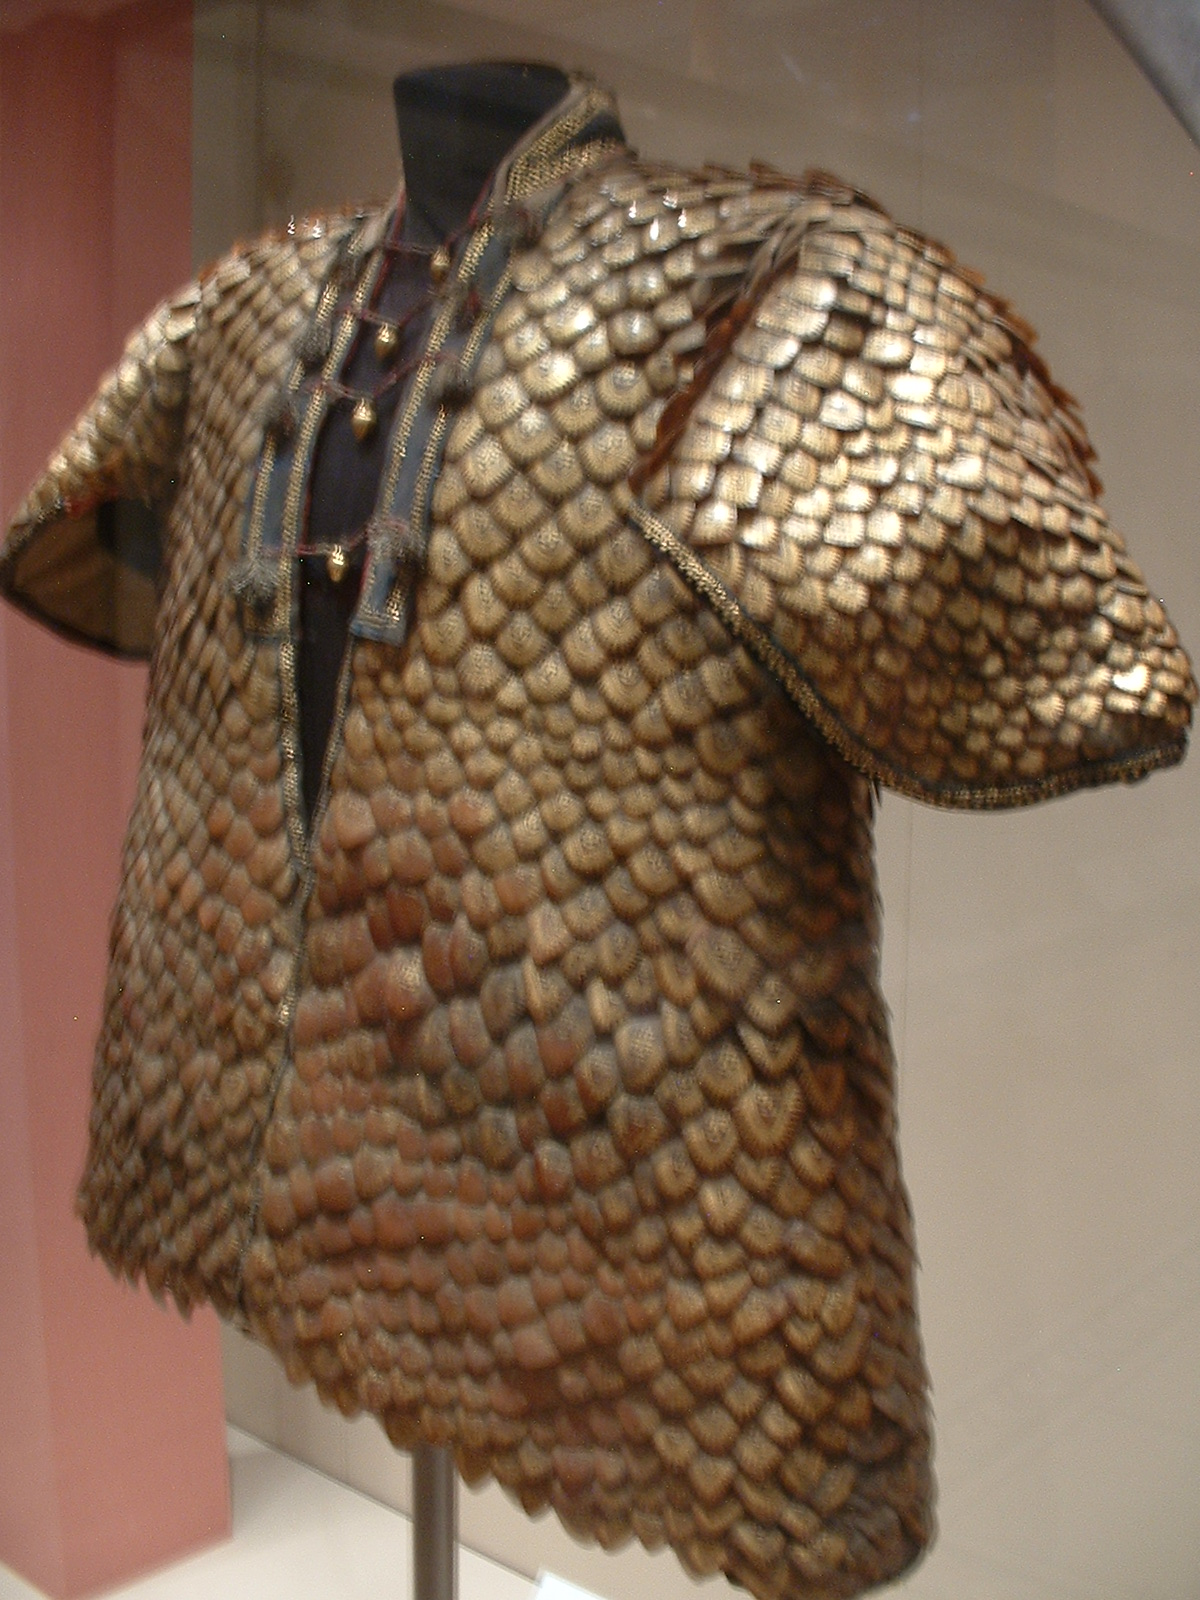 https://upload.wikimedia.org/wikipedia/commons/a/ae/Coat_of_Pangolin_scales.JPG